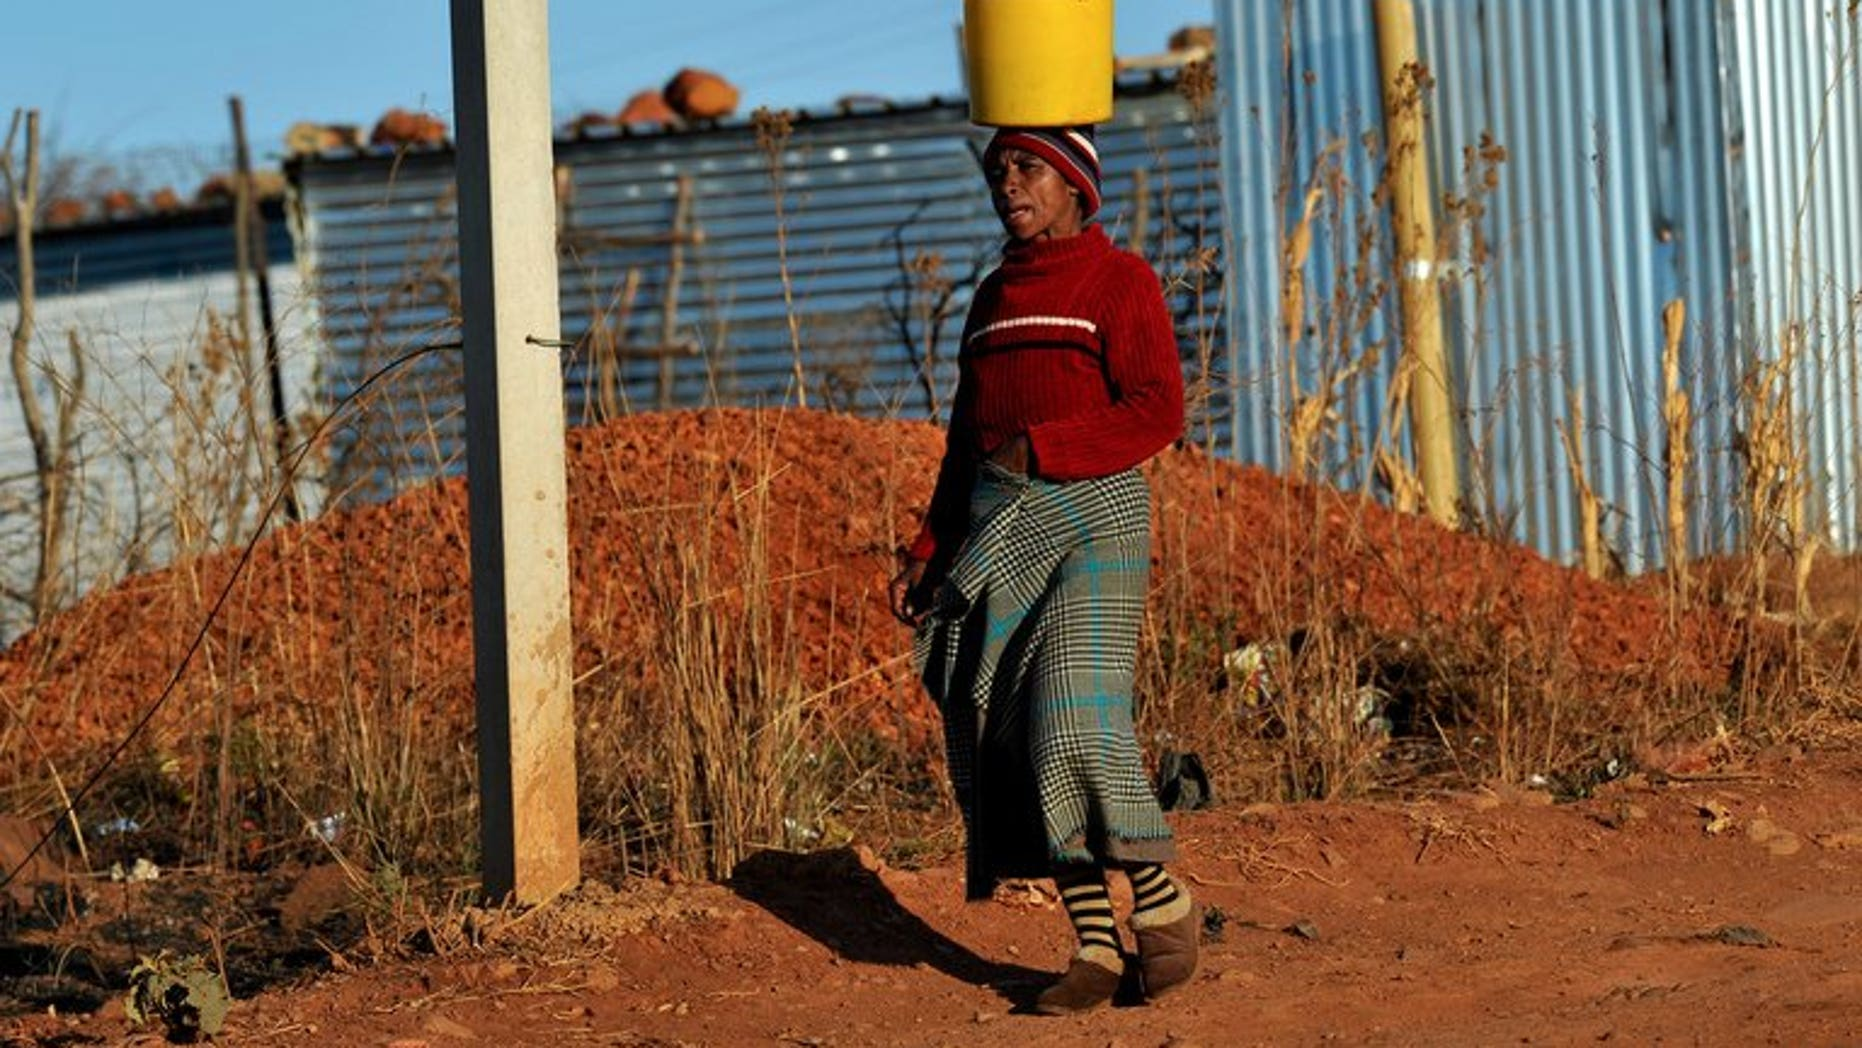 A woman brings water to her shack as workers who support the National Union of Mineworkers start a strike in Carletonville on September 3, 2013. South African construction workers have ended a three week strike after reaching a 12 percent wage hike deal with employers, their union said on Friday.